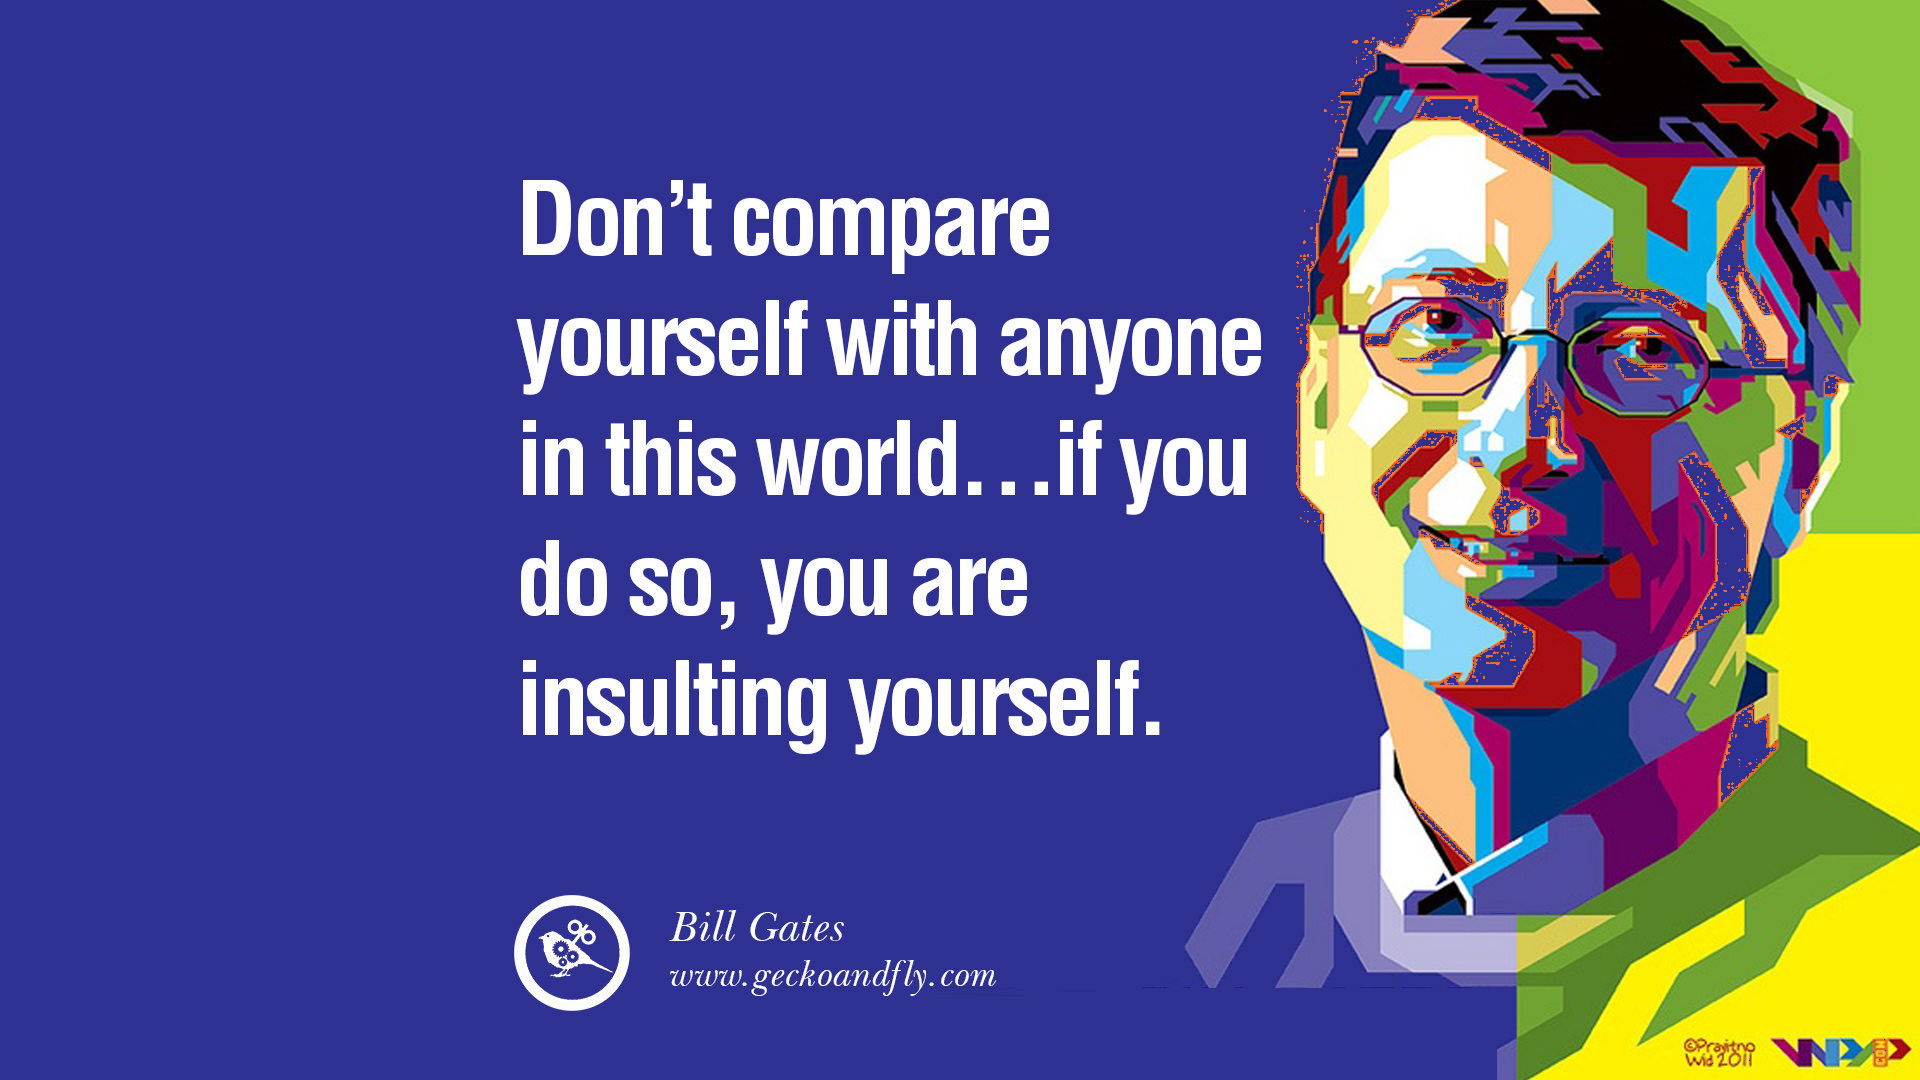 Bill gates wallpapers images photos pictures backgrounds - Bill gates hd wallpaper ...